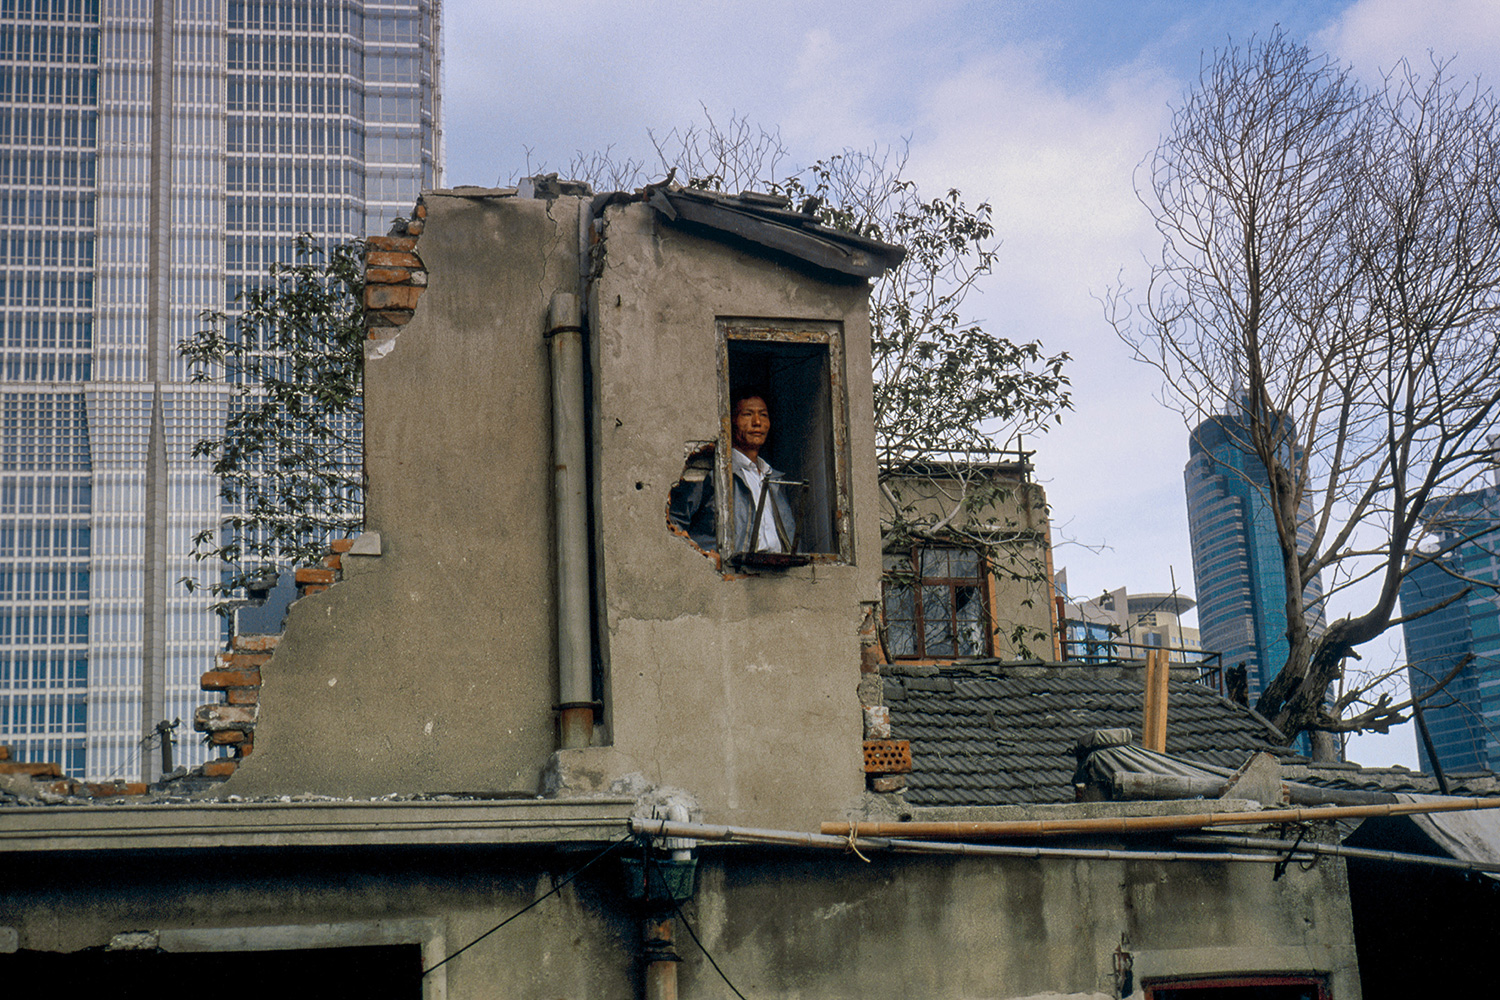 A resident refuses to leave his home at the base of the Jin Mao Tower, 1998.